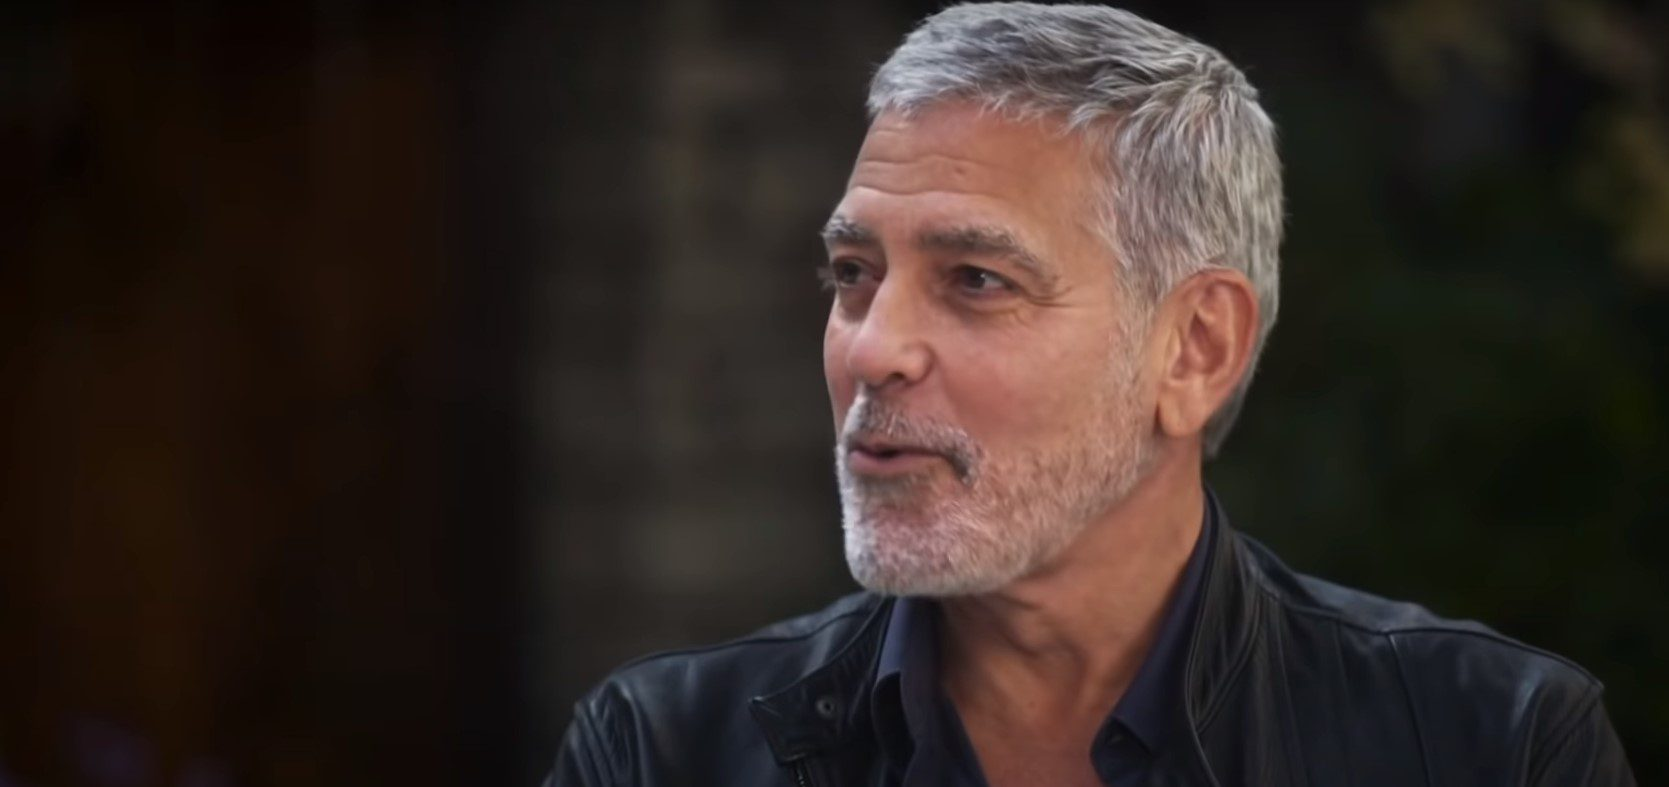 George Clooney Net worth rounds north of US $500 million